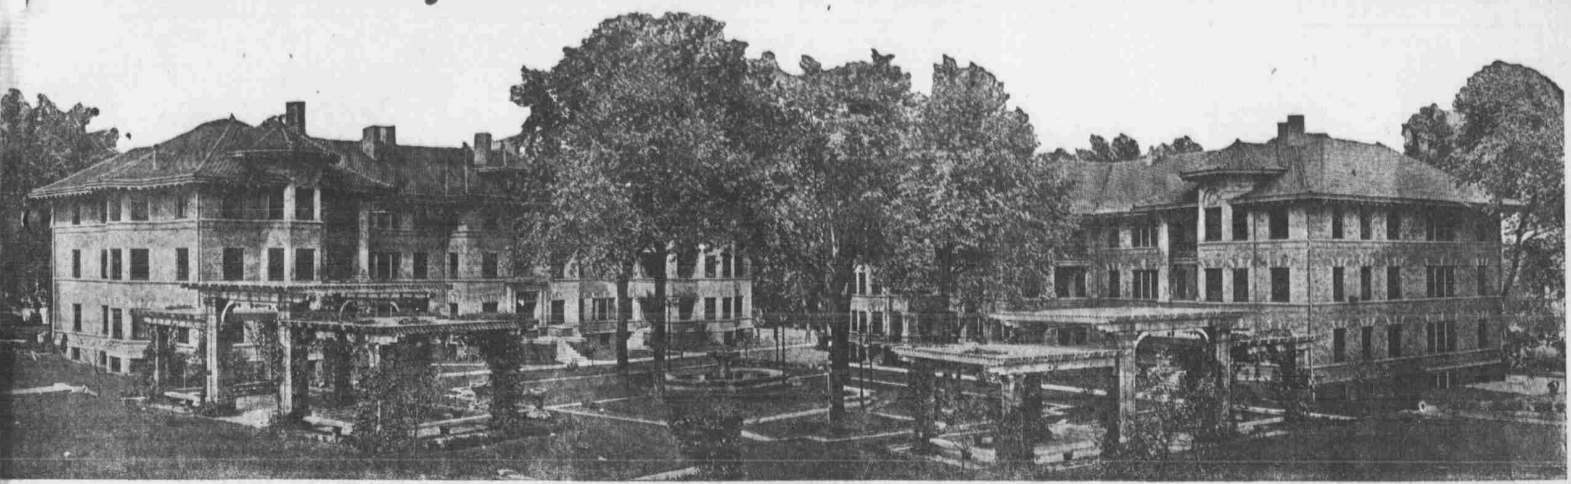 This is a 1915 pic of two buildings at Strehlow Court from the Omaha Bee